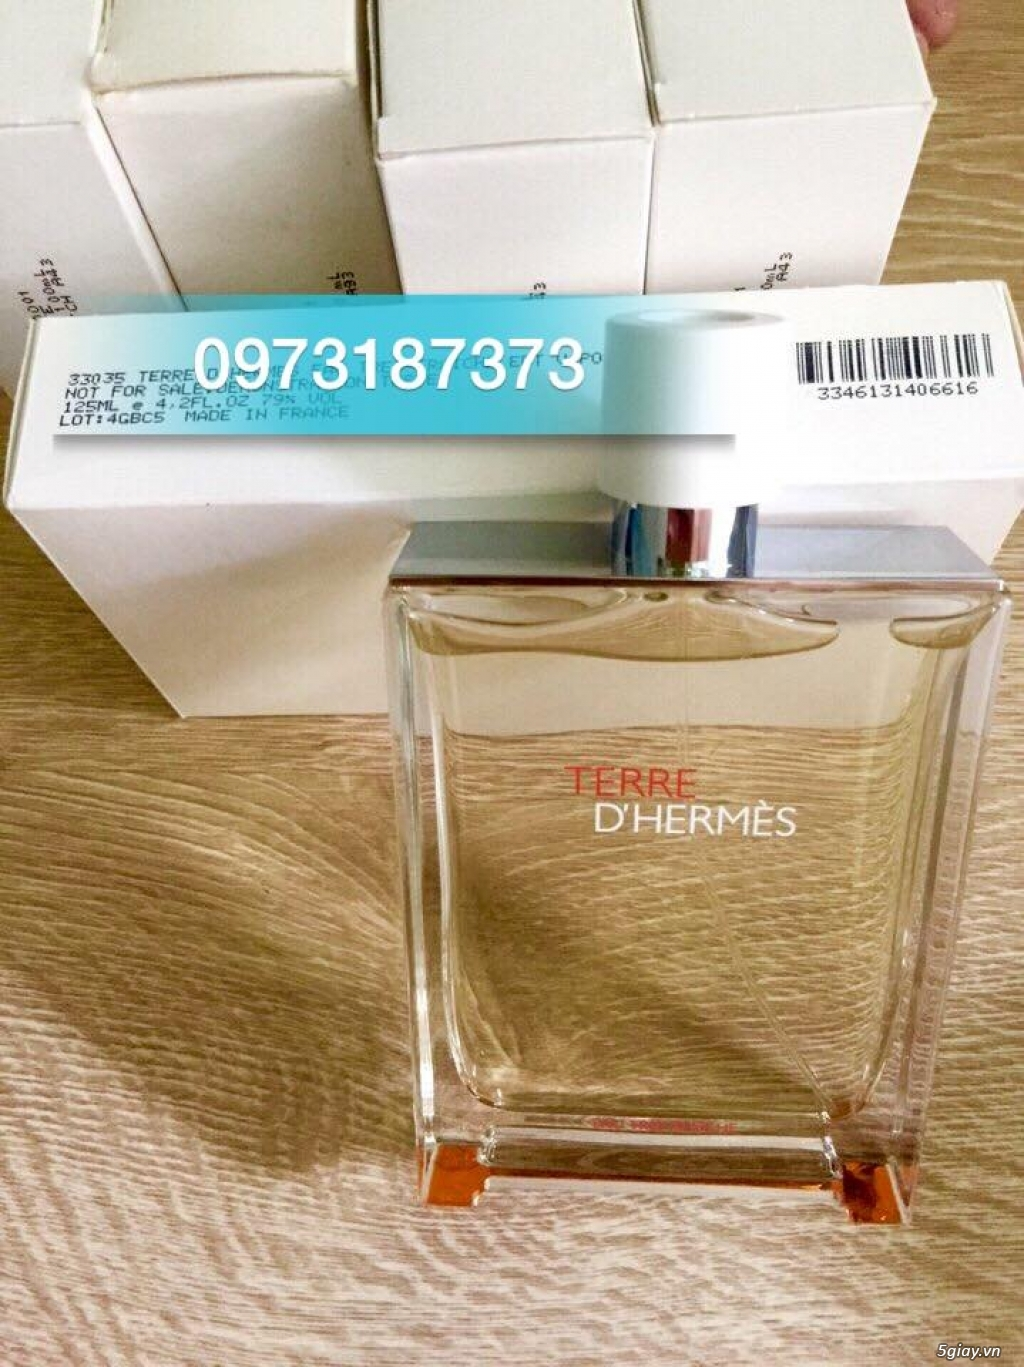 Nô s scent: ONLY FOR TESTER NOT FOR SALE - 28